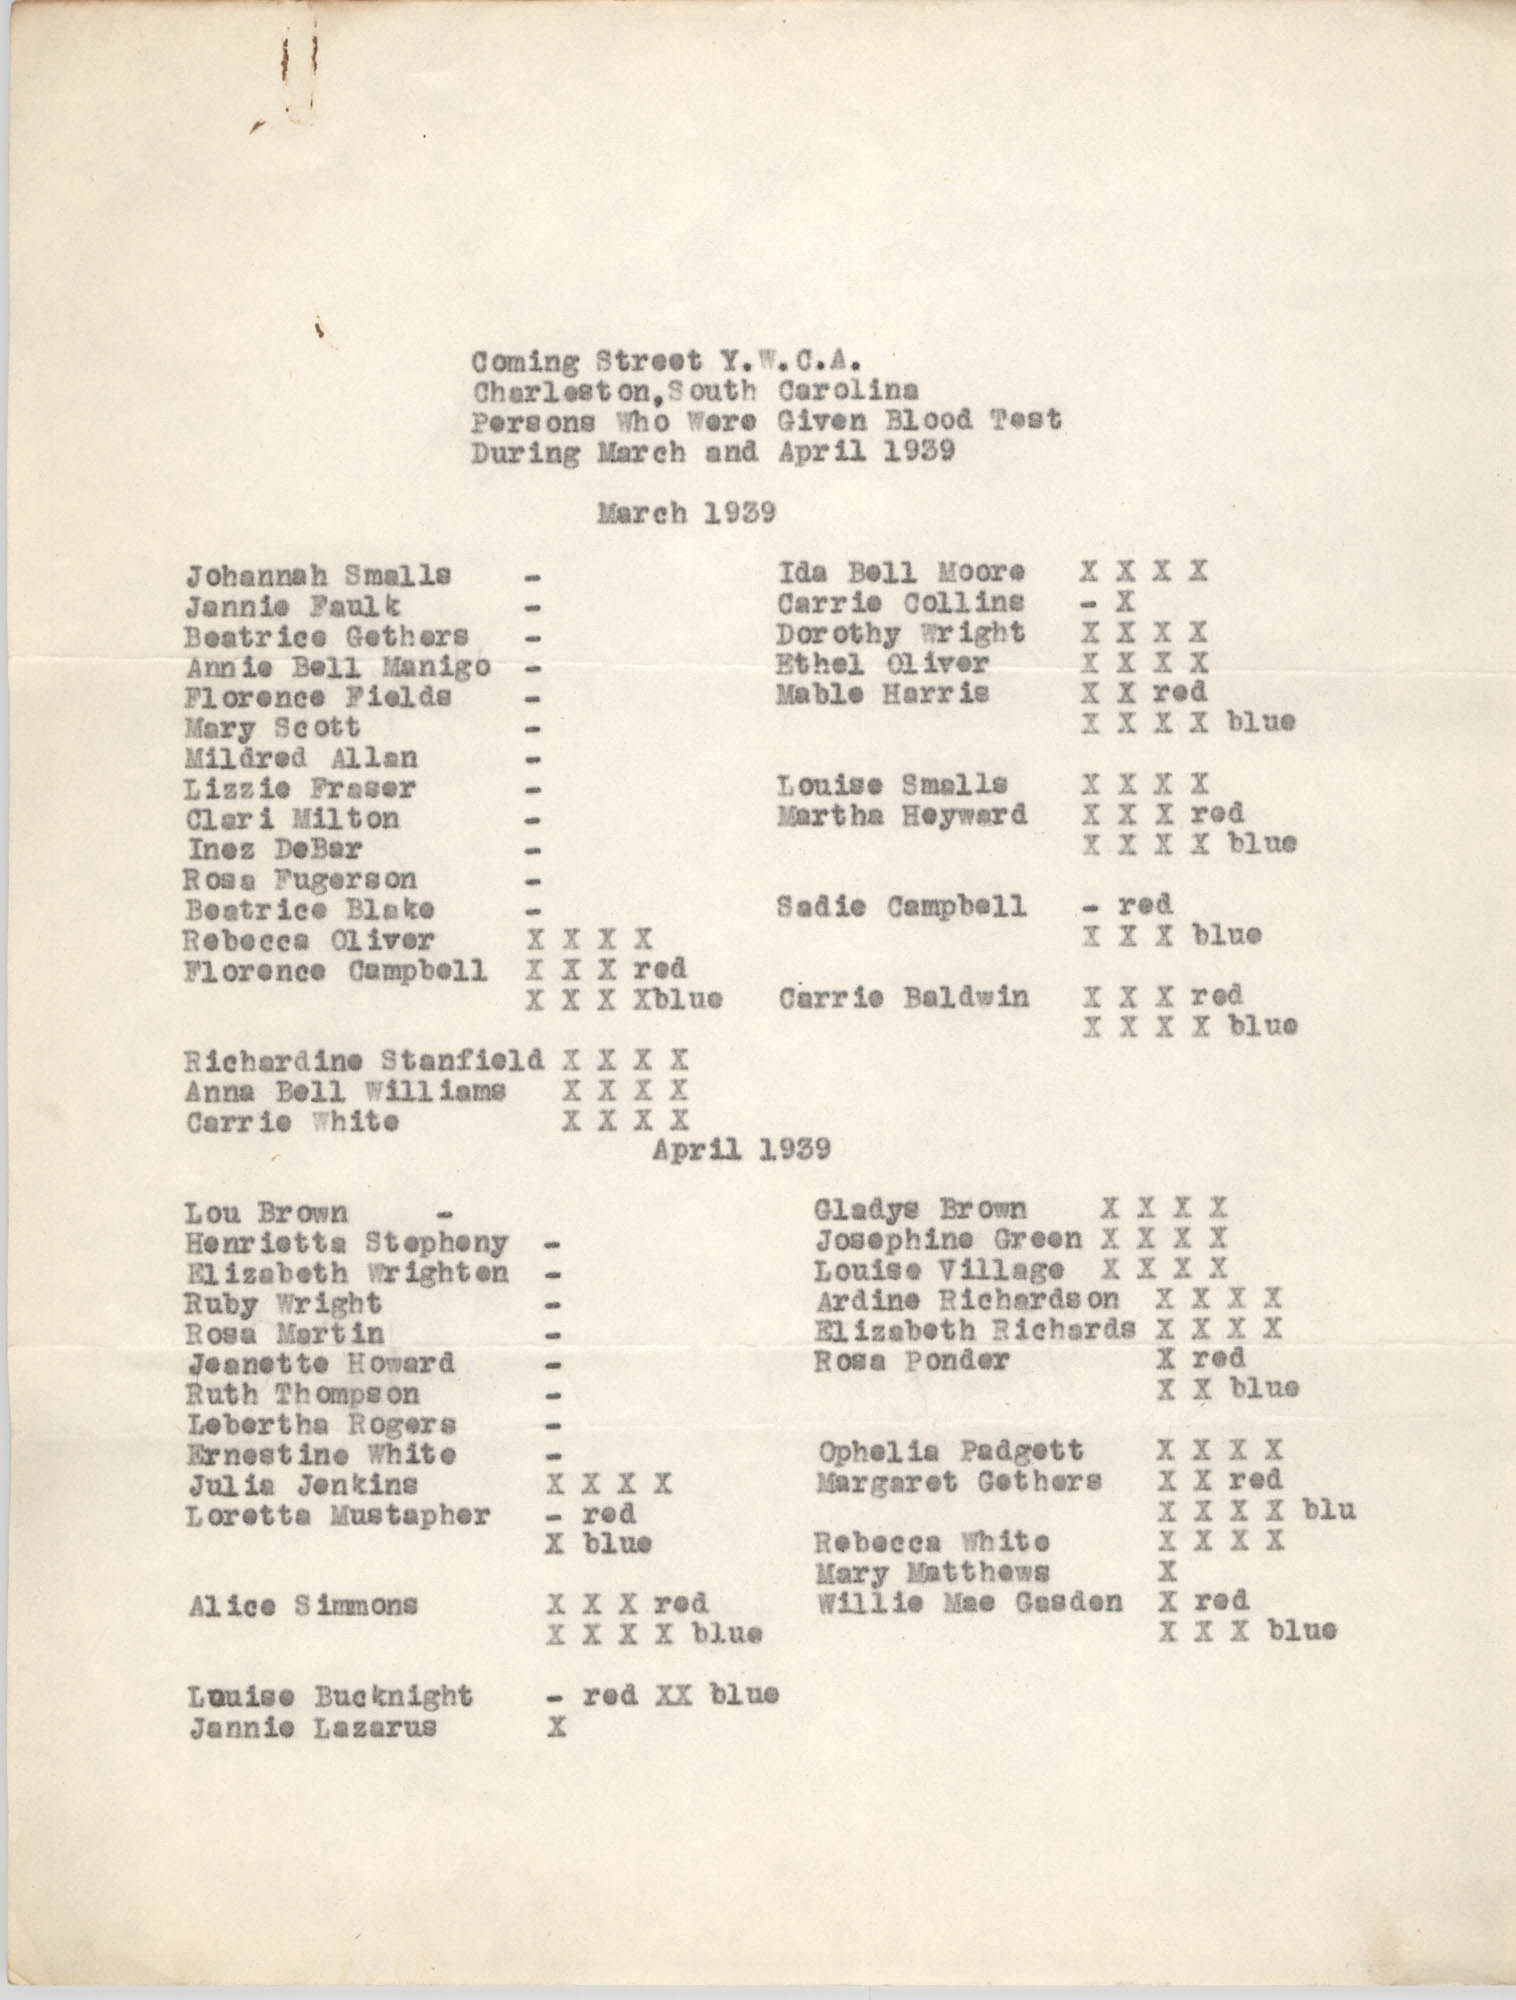 Monthly Report for the Coming Street Y.W.C.A., March 1939, Blood Test